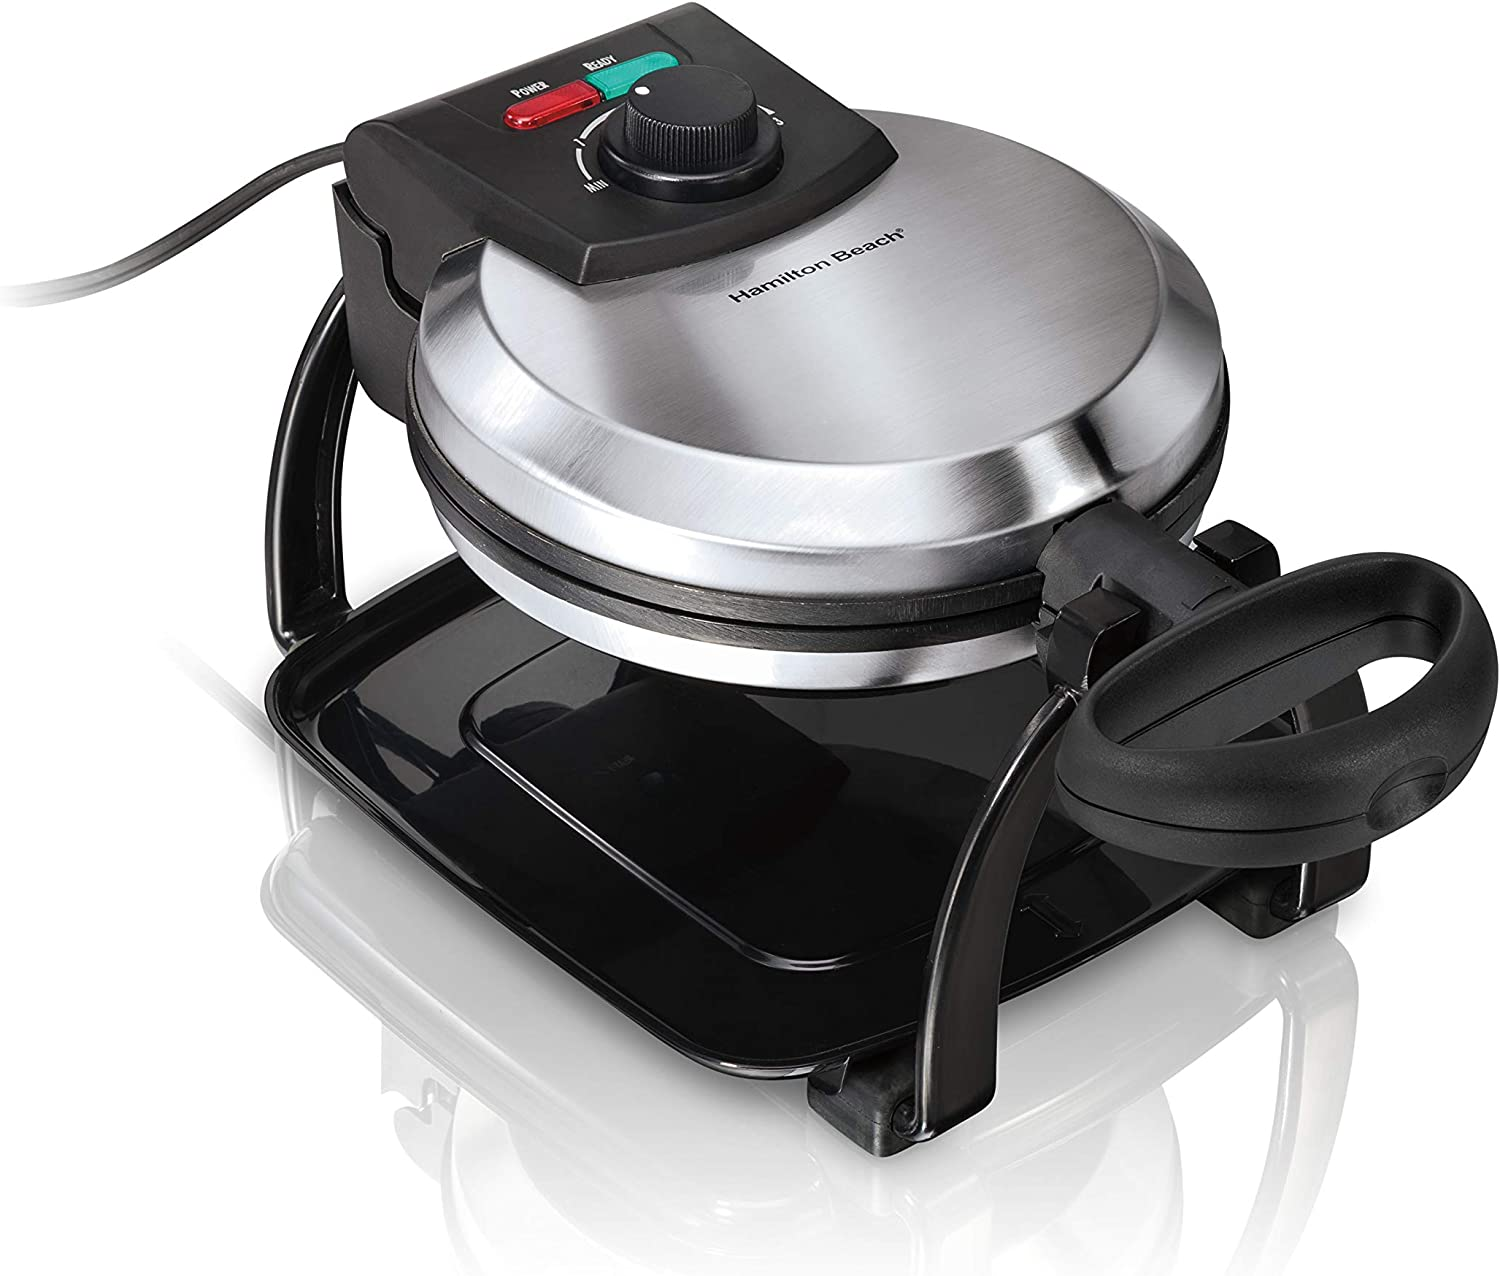 Hamilton Beach Flip Belgian Waffle Maker with Browning Control, Non-Stick Grids, Indicator Lights, Lid Lock and Drip Tray, Stainless Steel 26010R